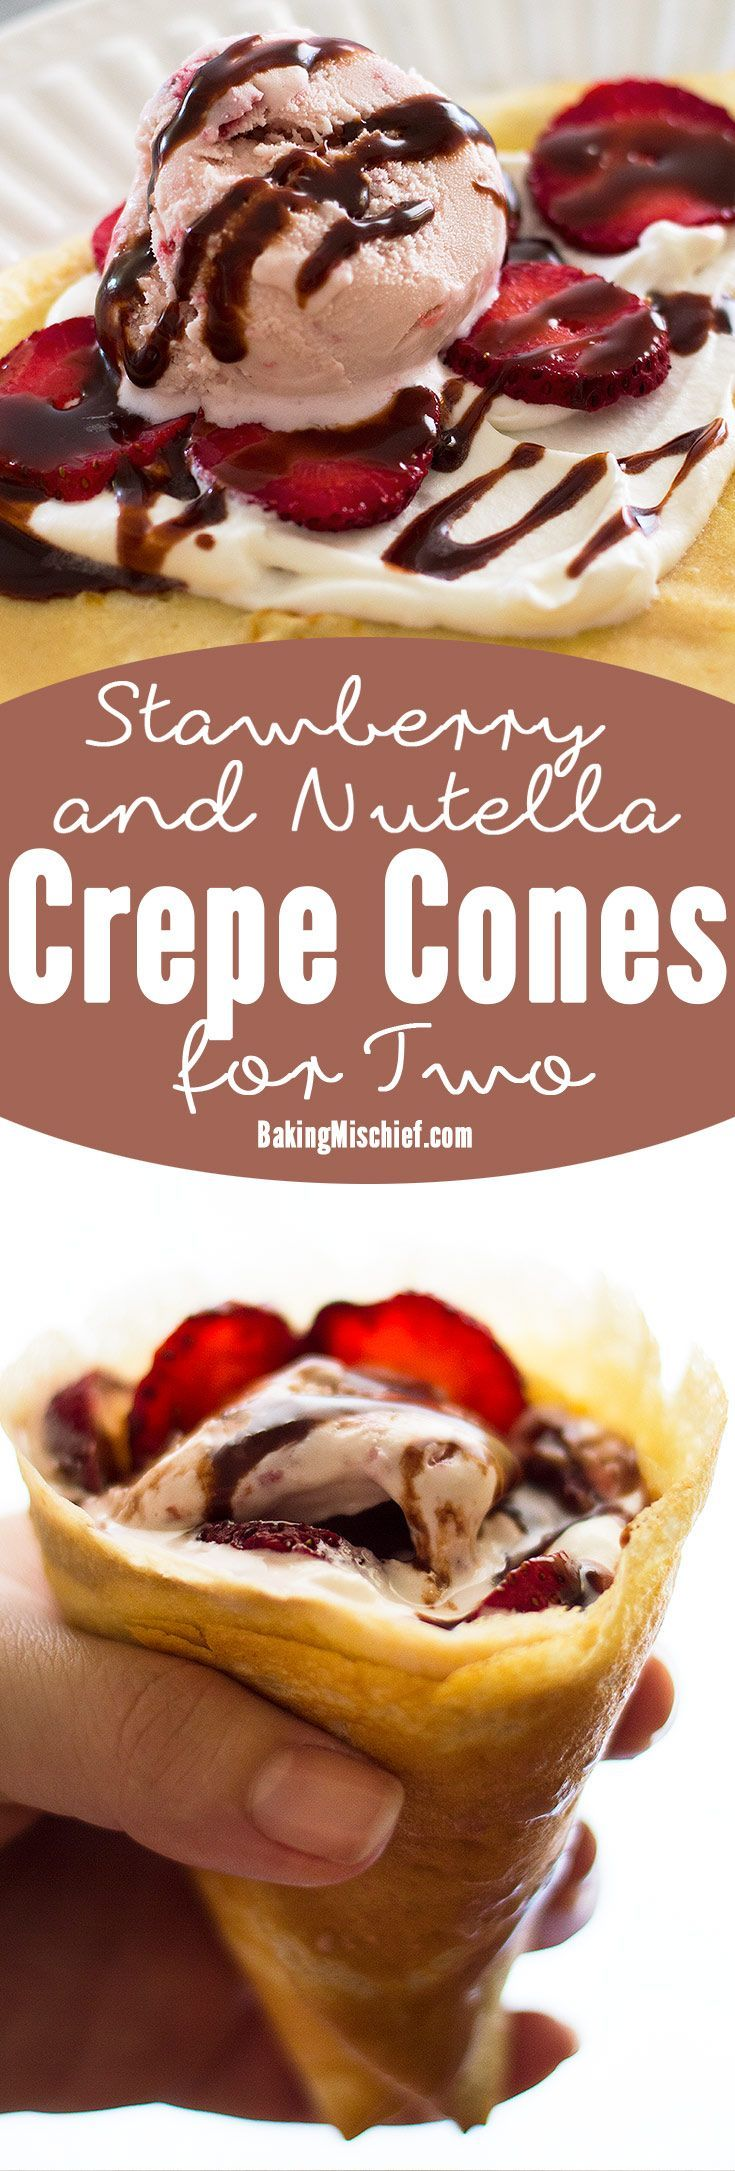 Put leftover crepes to good use and turn them into crepe cones! Perfect for a sunny summer day, these cones are stuffed with strawberry ice cream, fresh strawberries, and whipped cream, and drizzled with a quick and easy Nutella sauce. Recipe includes nutritional information. From http://BakingMischief.com